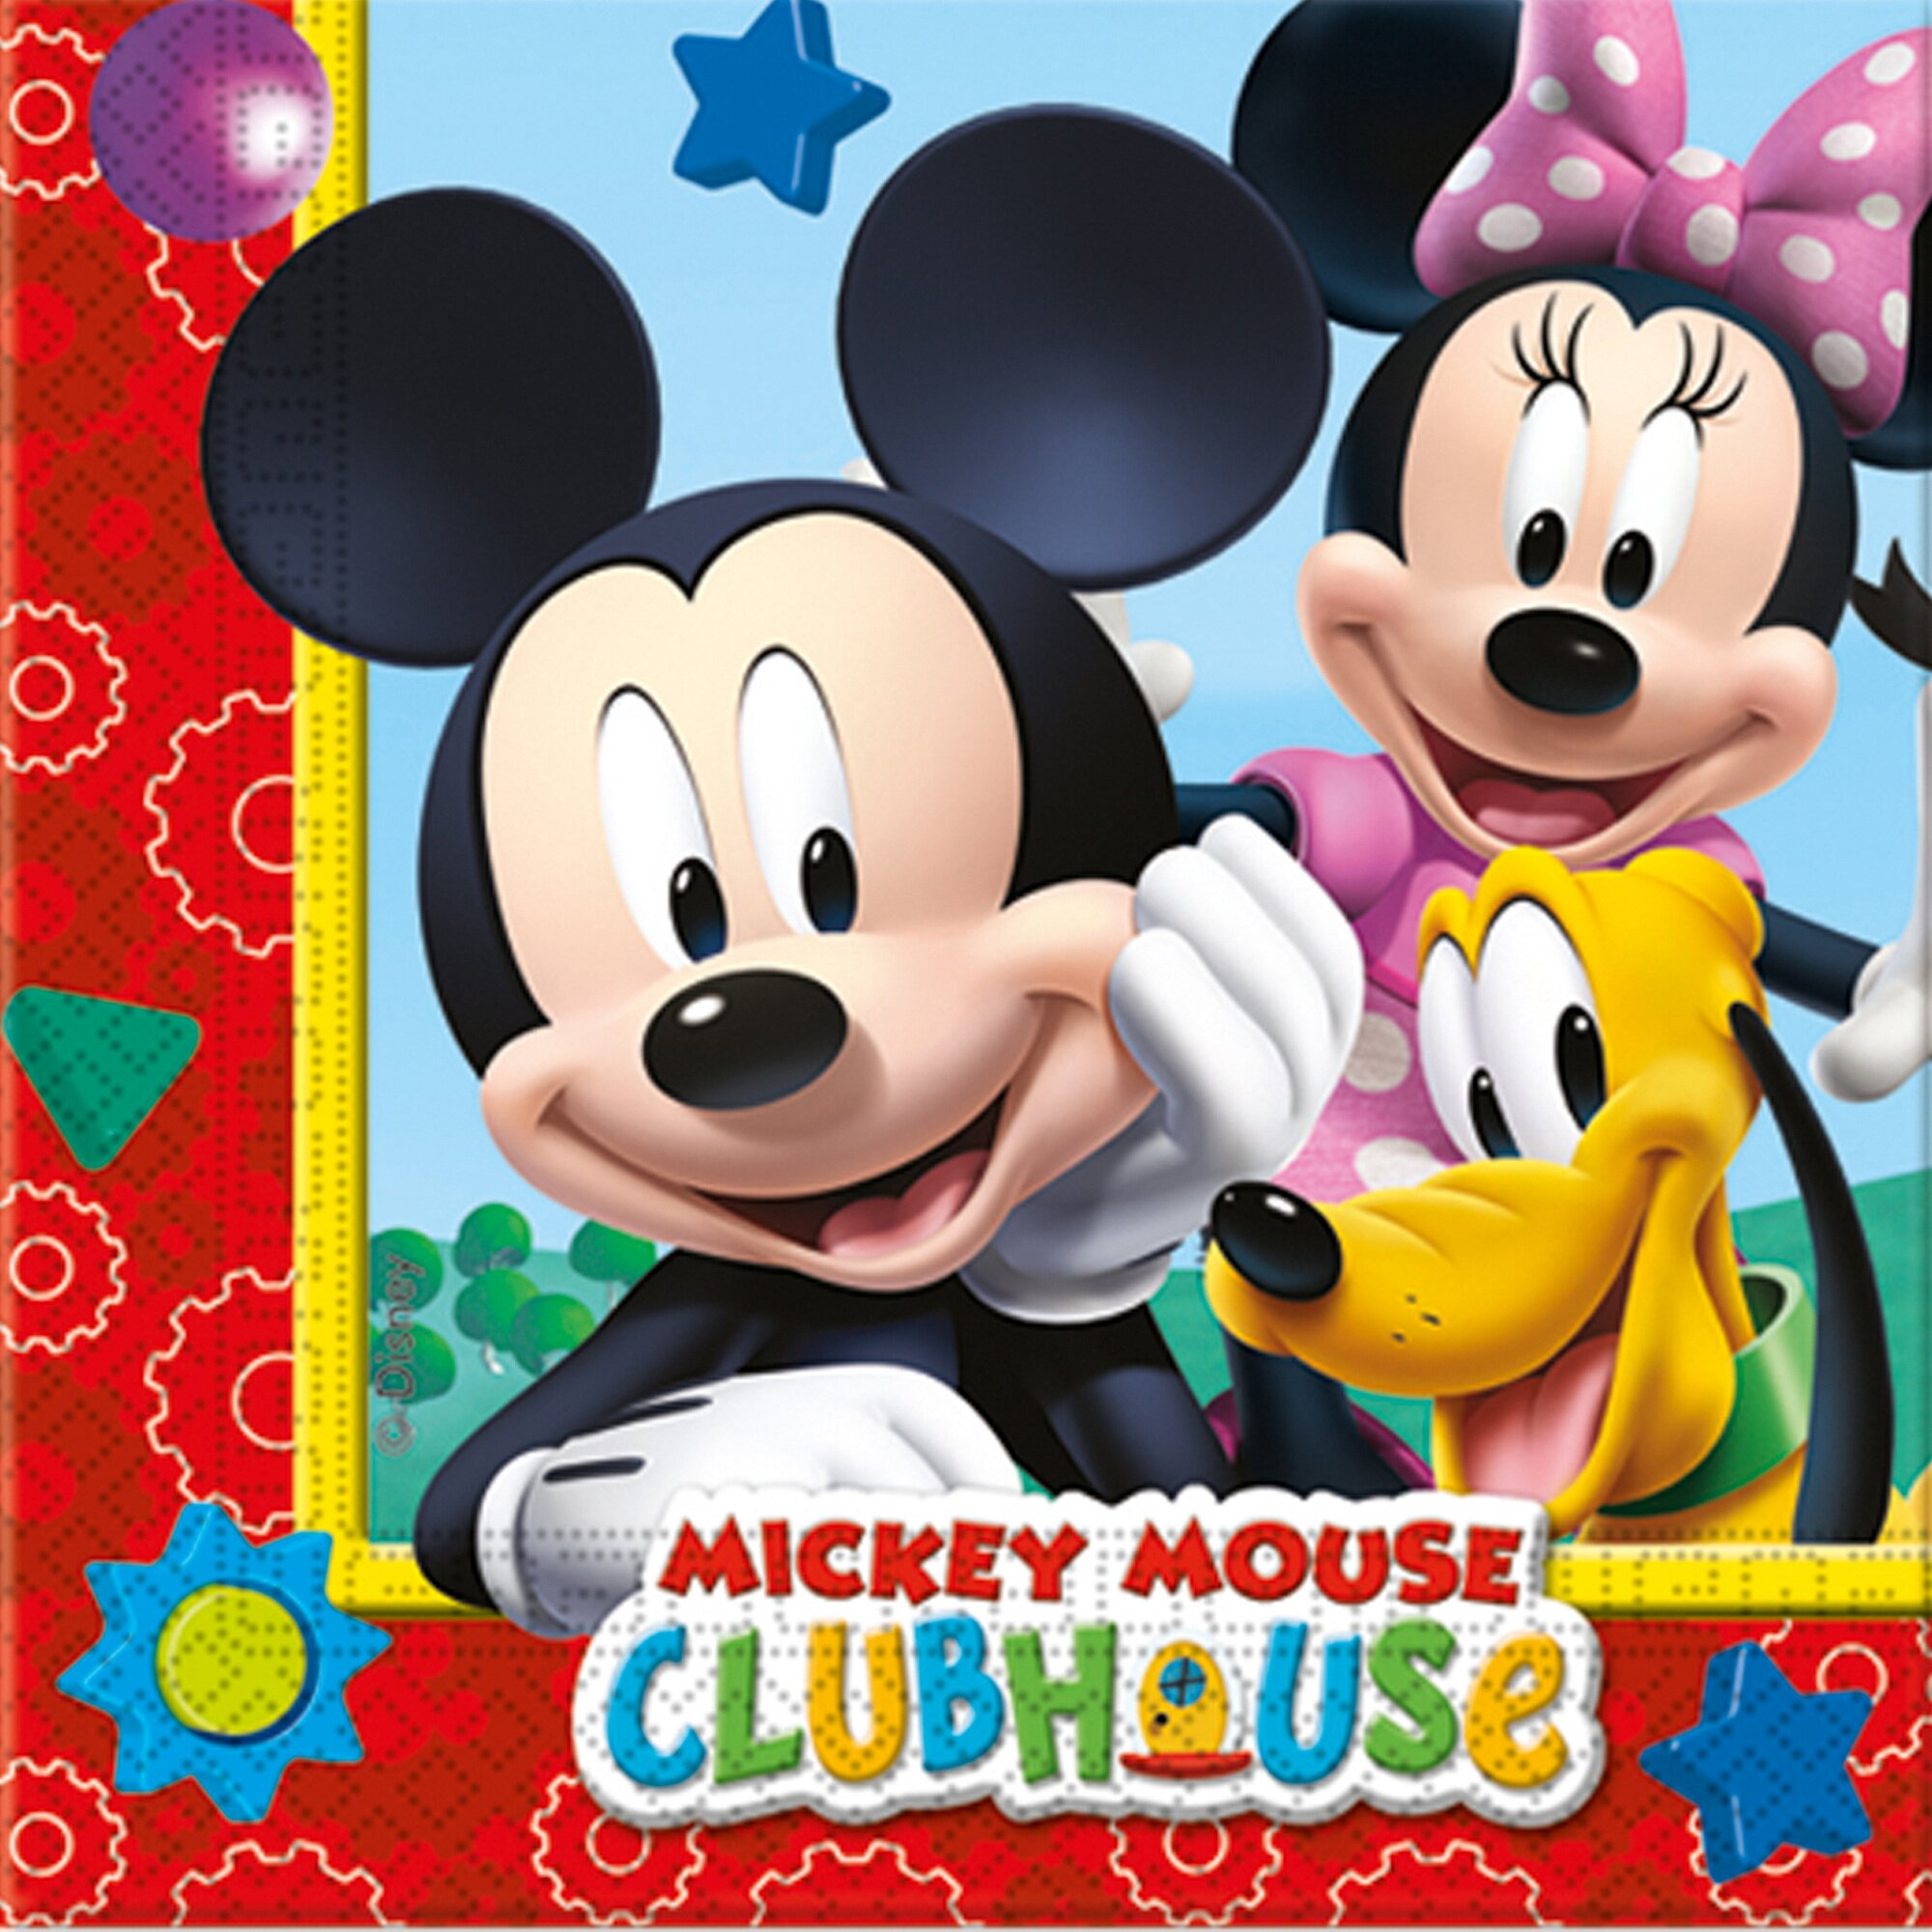 disney-mickey-mouse-friends-50-tlg-partyset-mickey-mouse